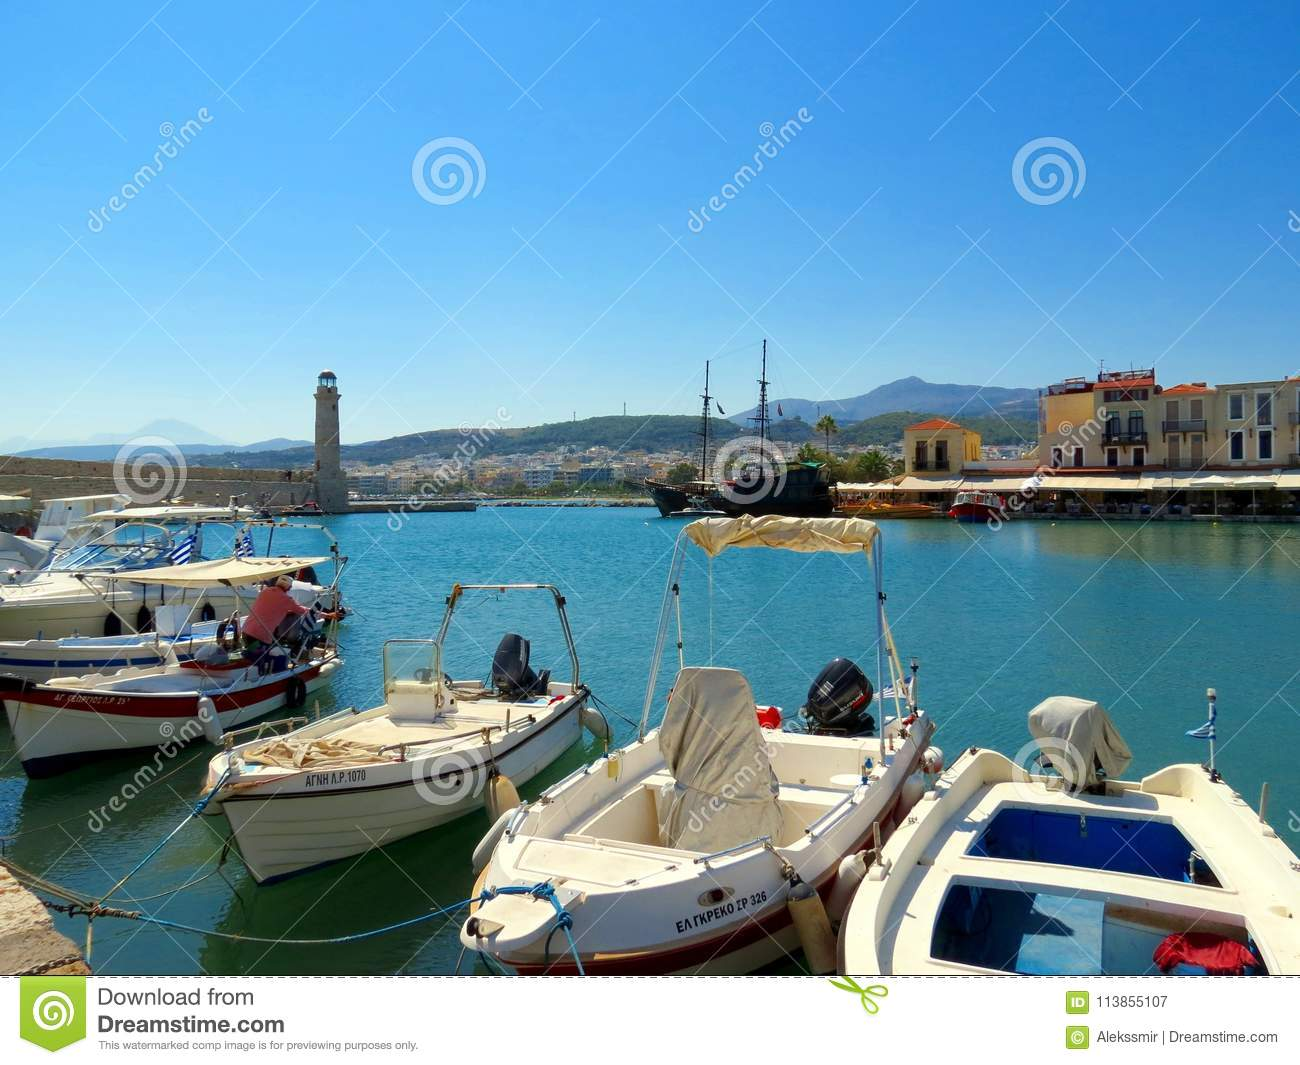 Greek Venice - the city of Rethymnon